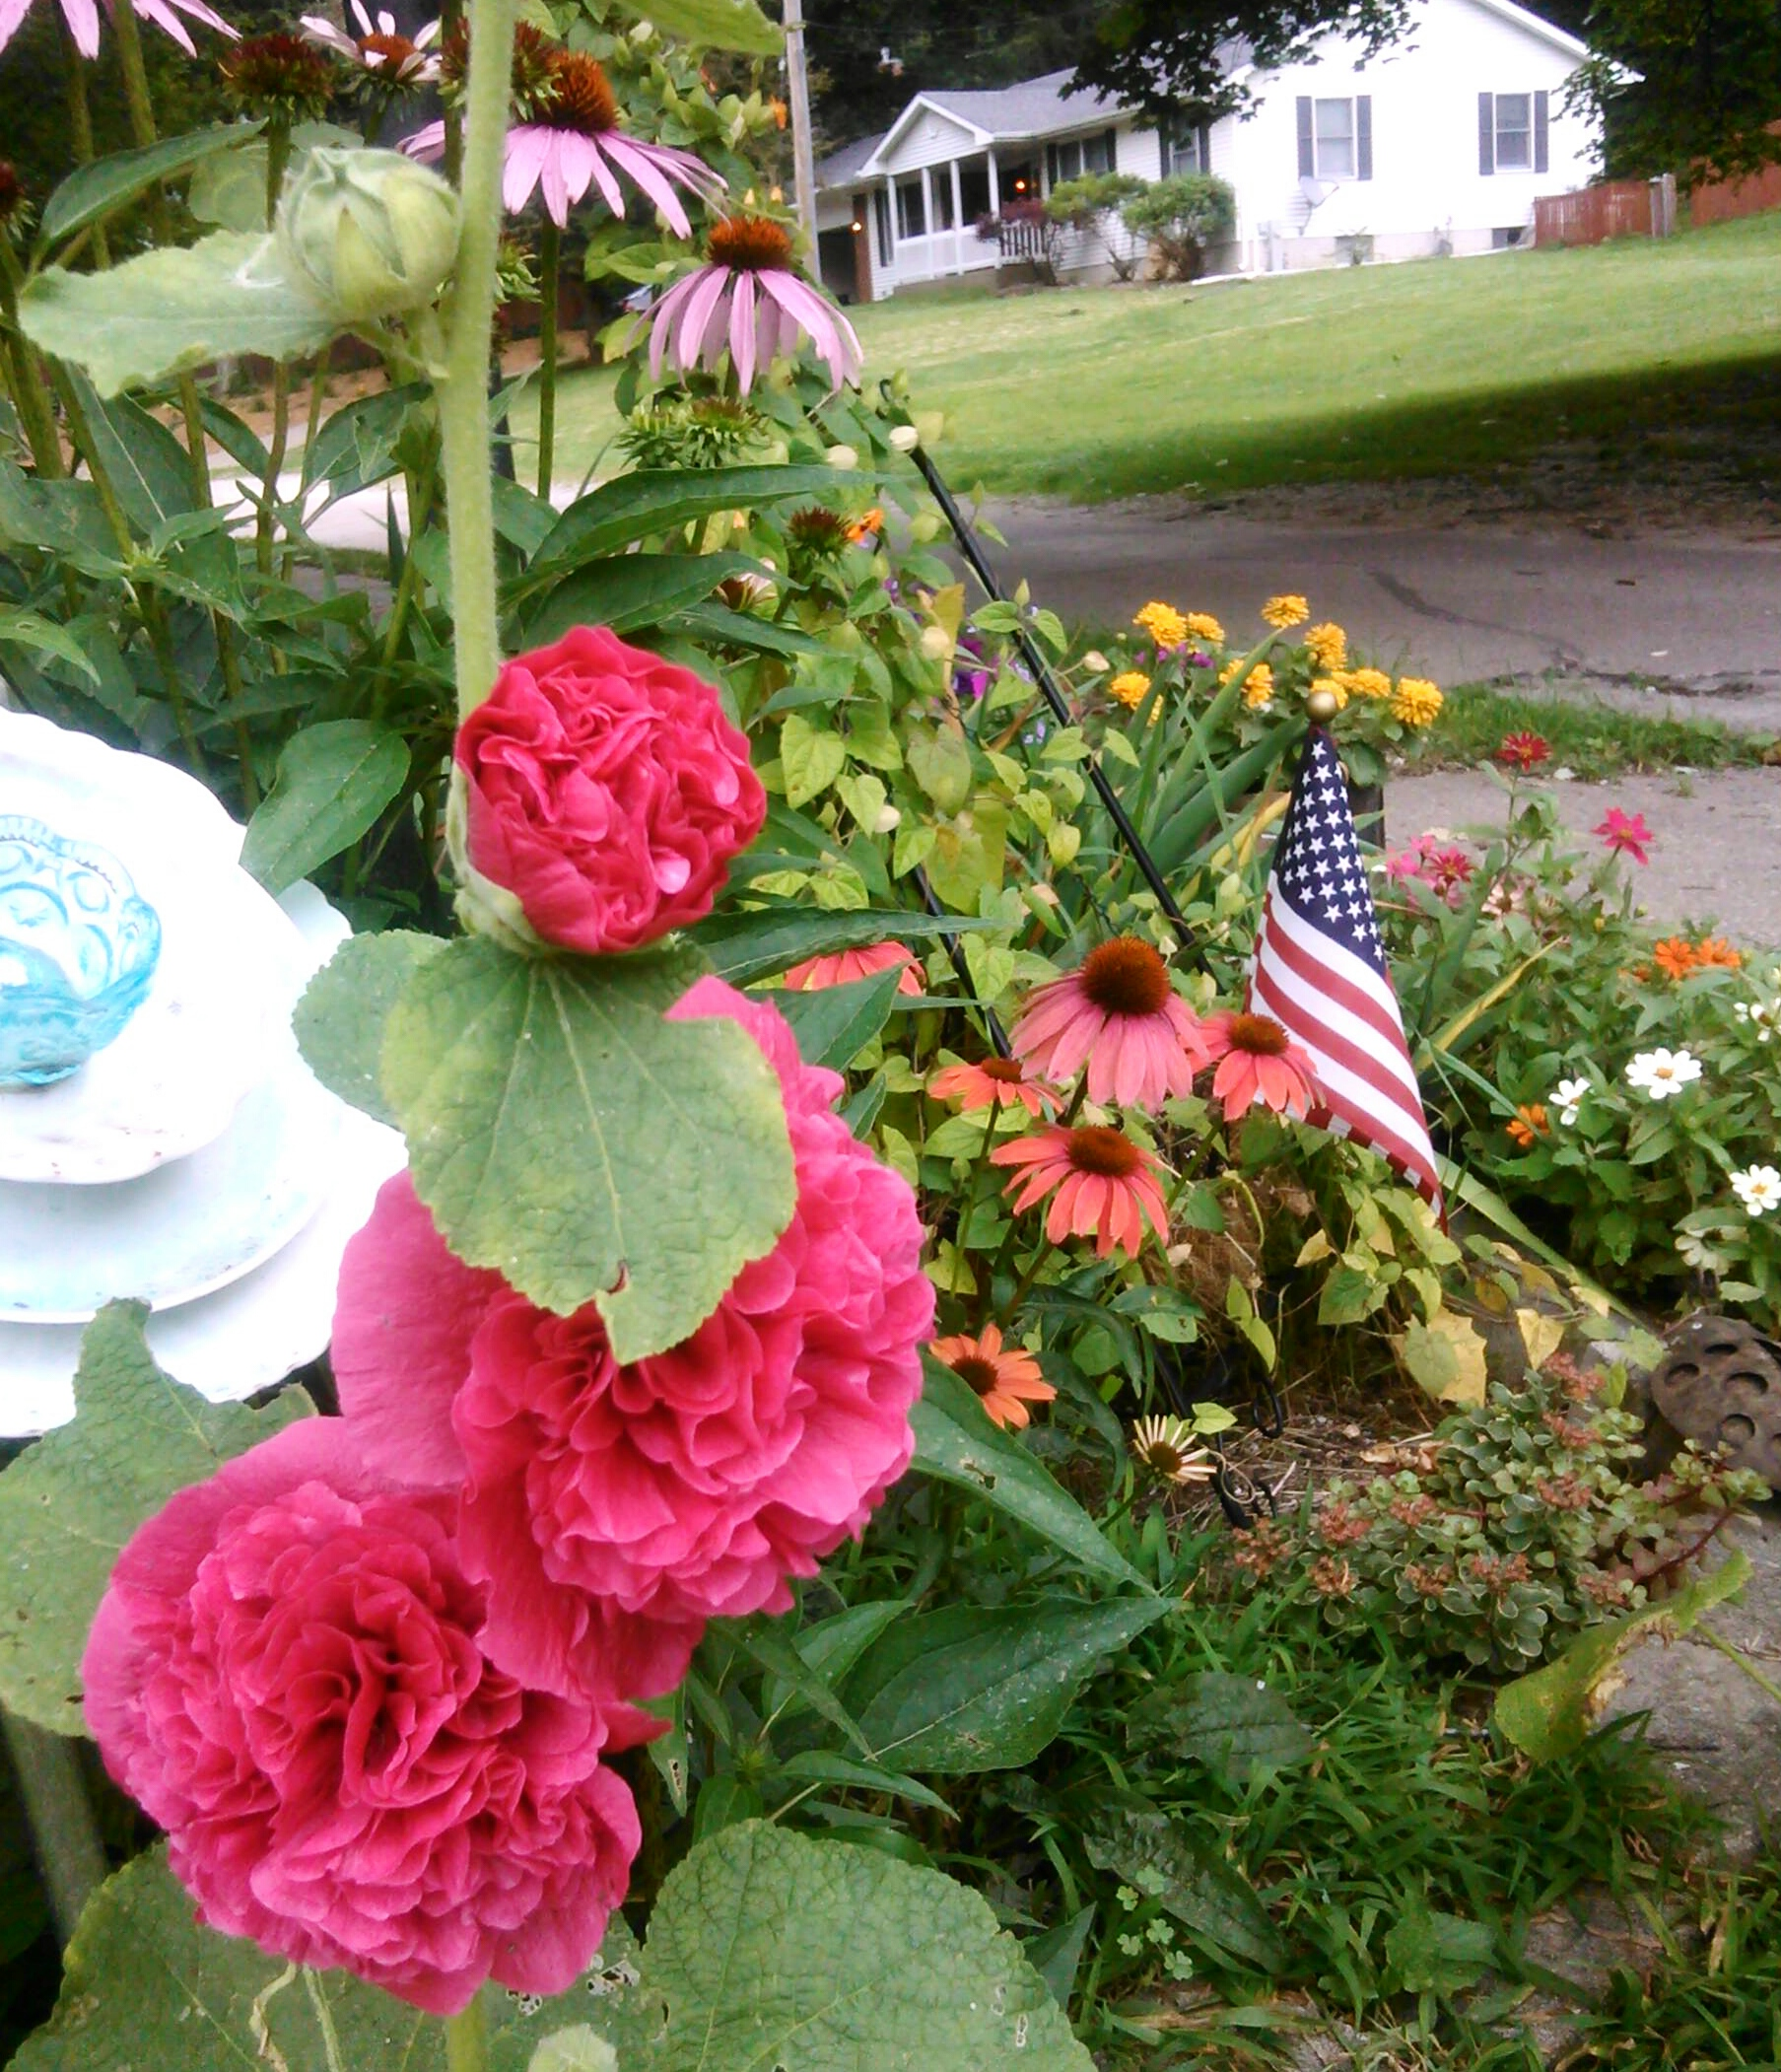 Patriotic flower garden with american flag for 4th of July by Shalom Schultz Designs. Independence Day. Freedom. Summer gardening decorations.